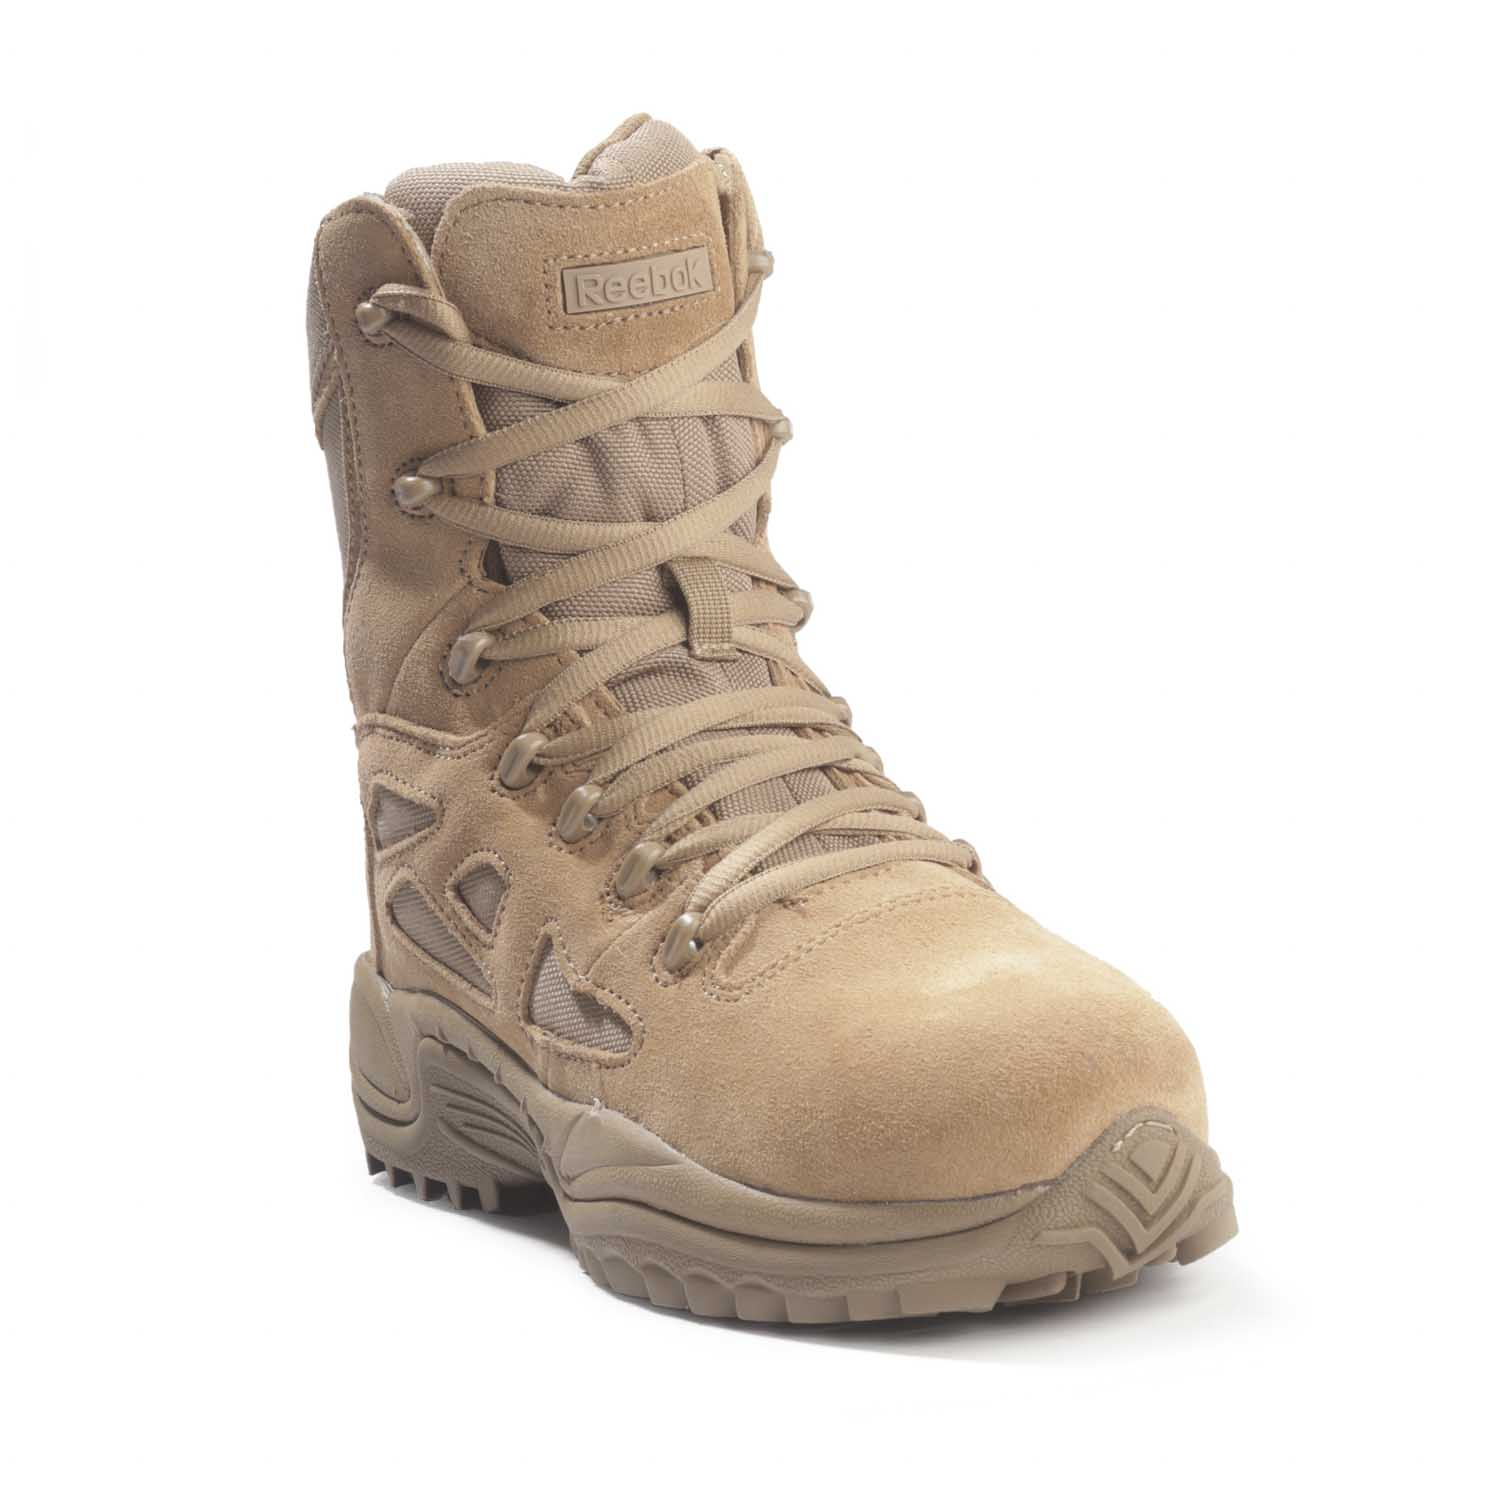 "Reebok Rapid Response 8"" Stealth Side Zip Coyote Boot"